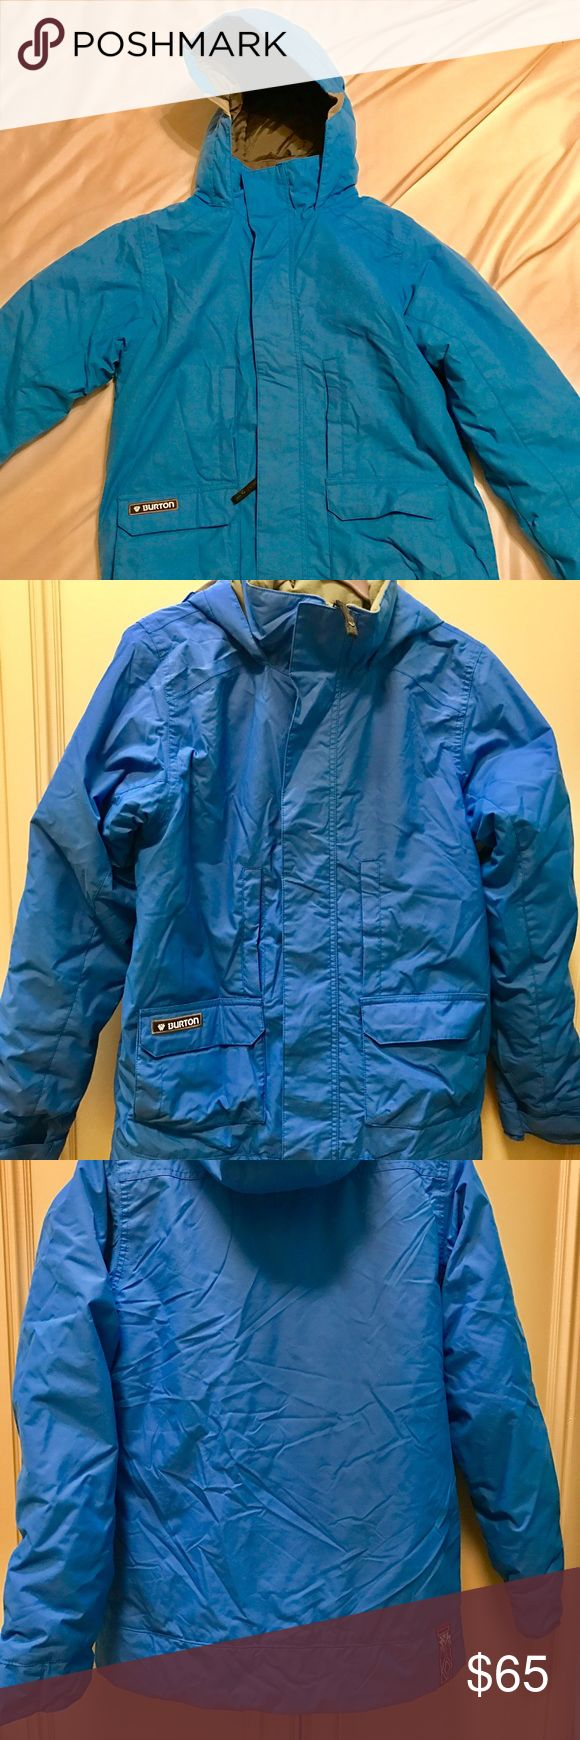 Burton Ski jacket Burton brand; The White Collection Aqua blue waterproof ski jacket; excellent condition; rarely worn;  all zippers and snaps work perfectly Burton Jackets & Coats